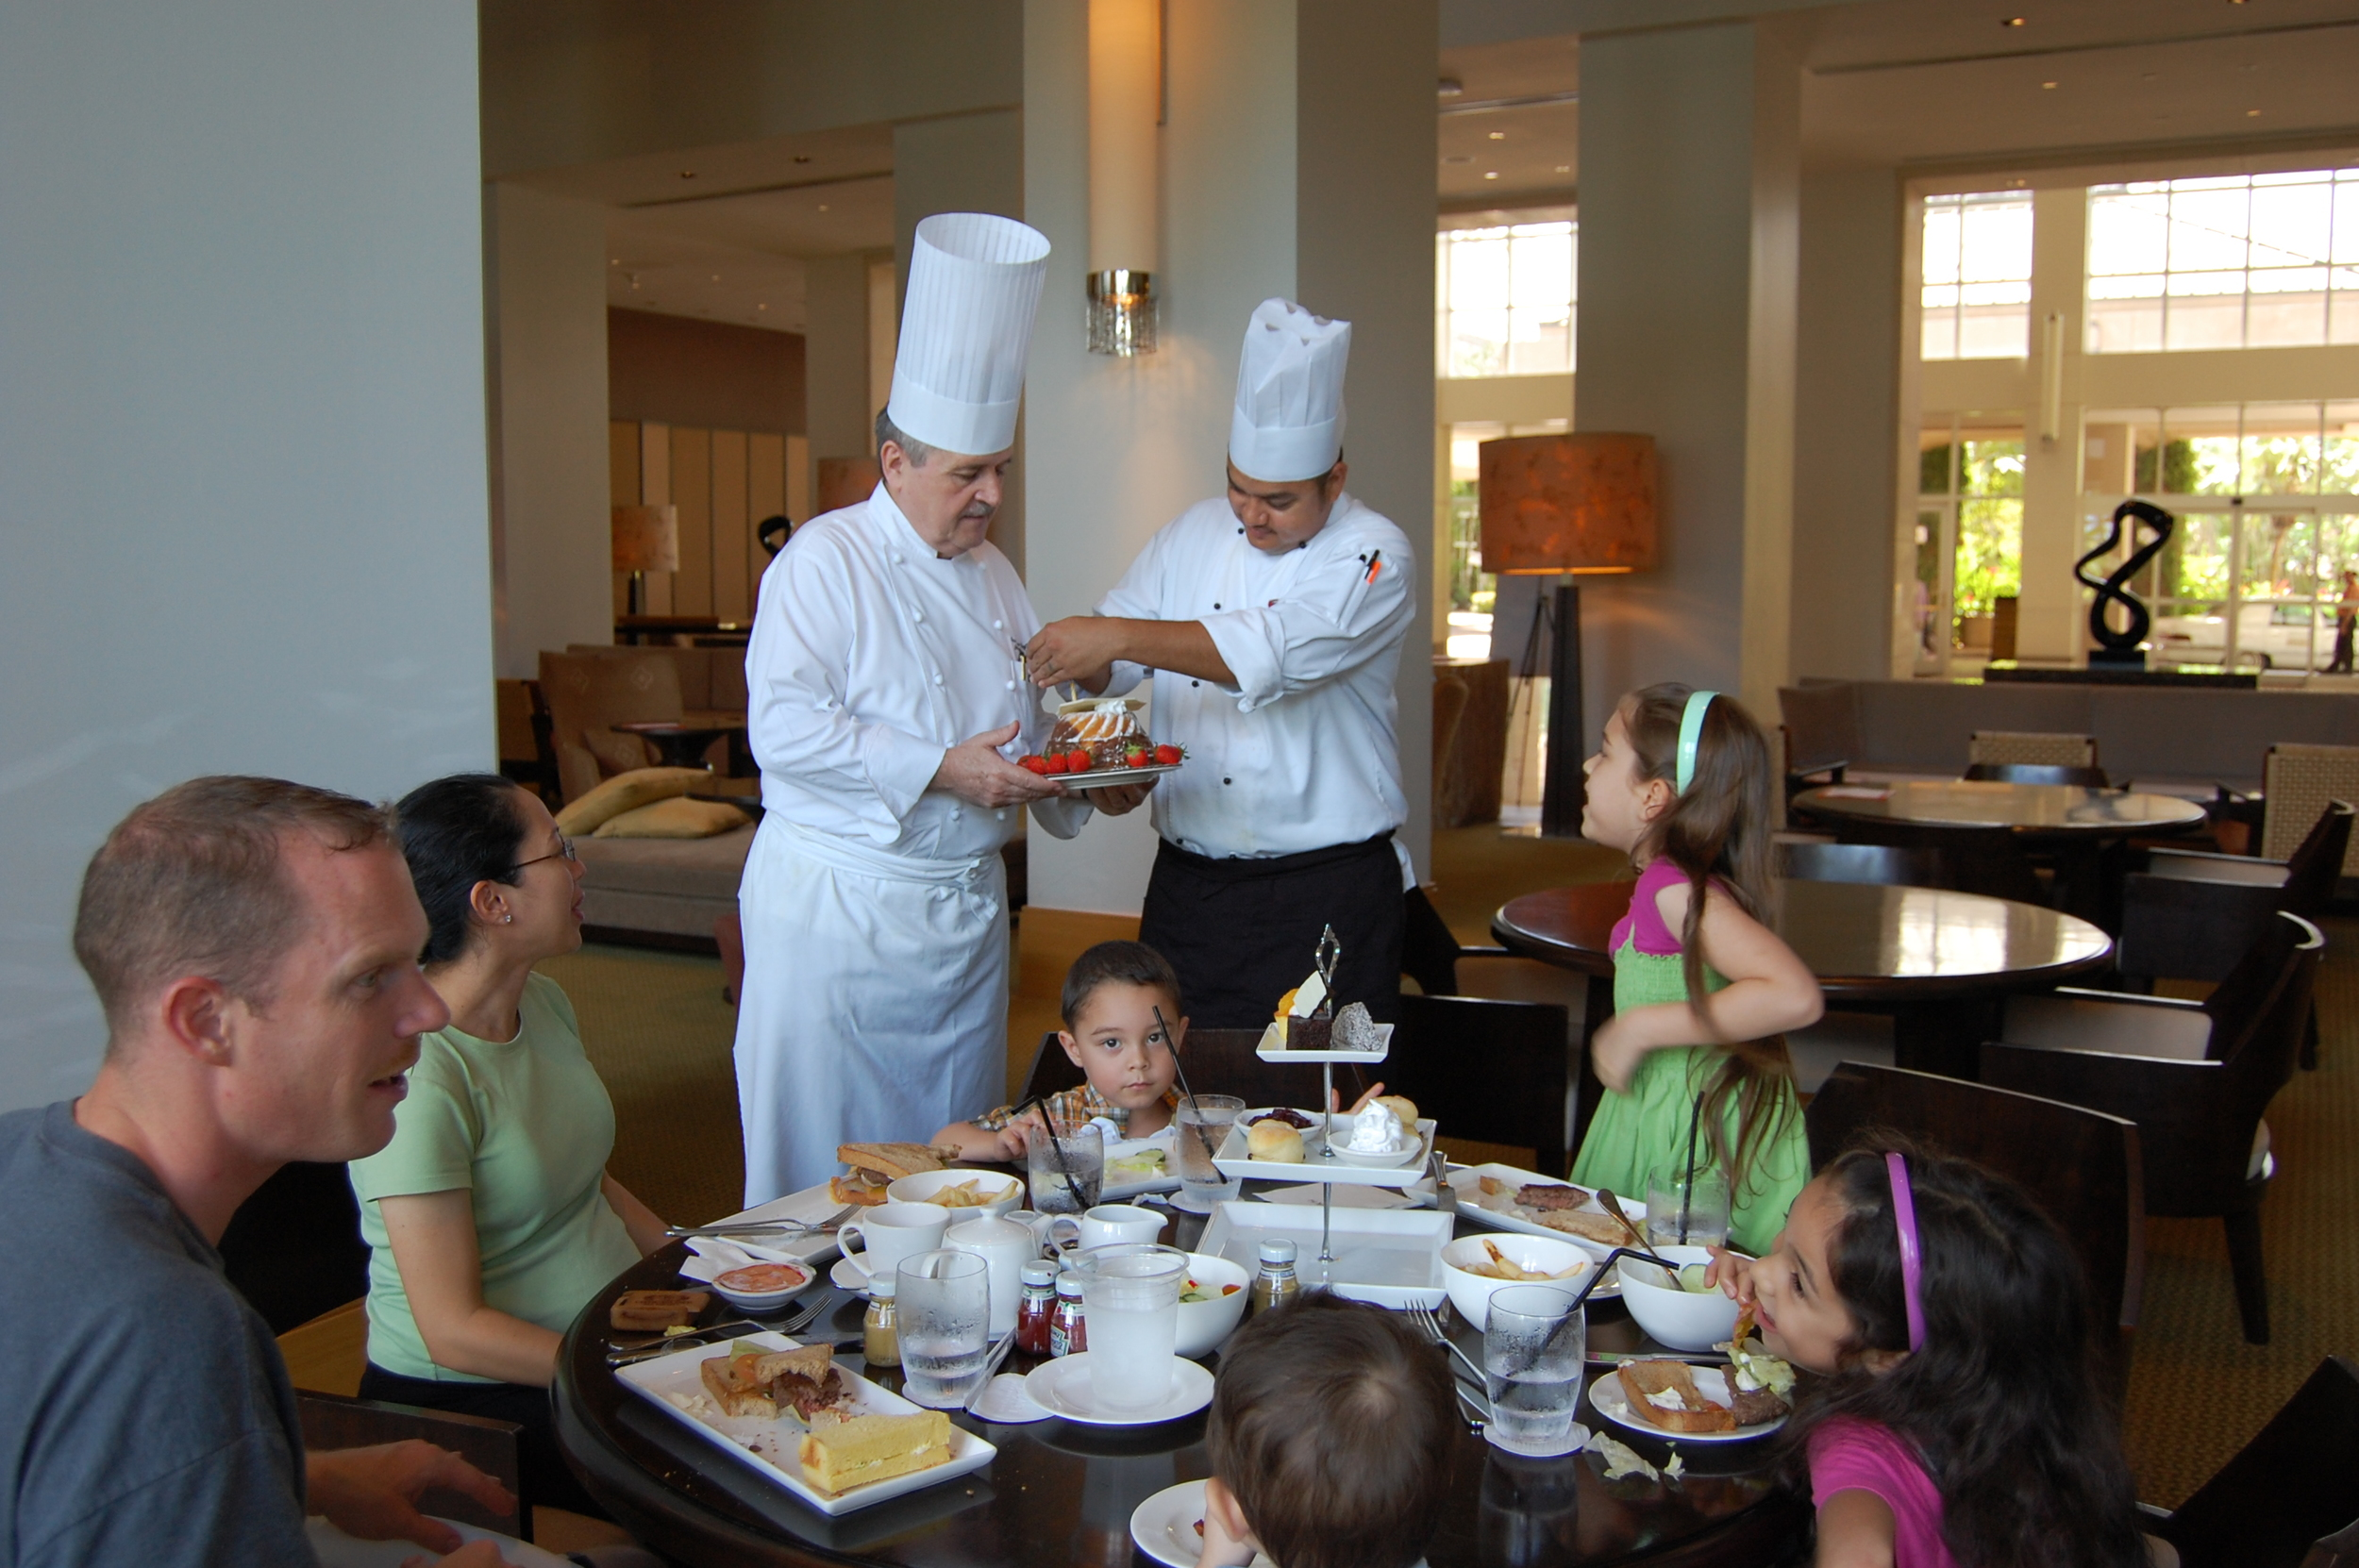 March 2011 - We surprise Pelaiah with high tea and a family meal at Hyatt Regency Guam's lounge and then Famous Executive chef Josef Budde wanted to surprise her with a cake, strawberries, chocolate, and an illusion show for the children. I was also pregnant with Daniel. :-)